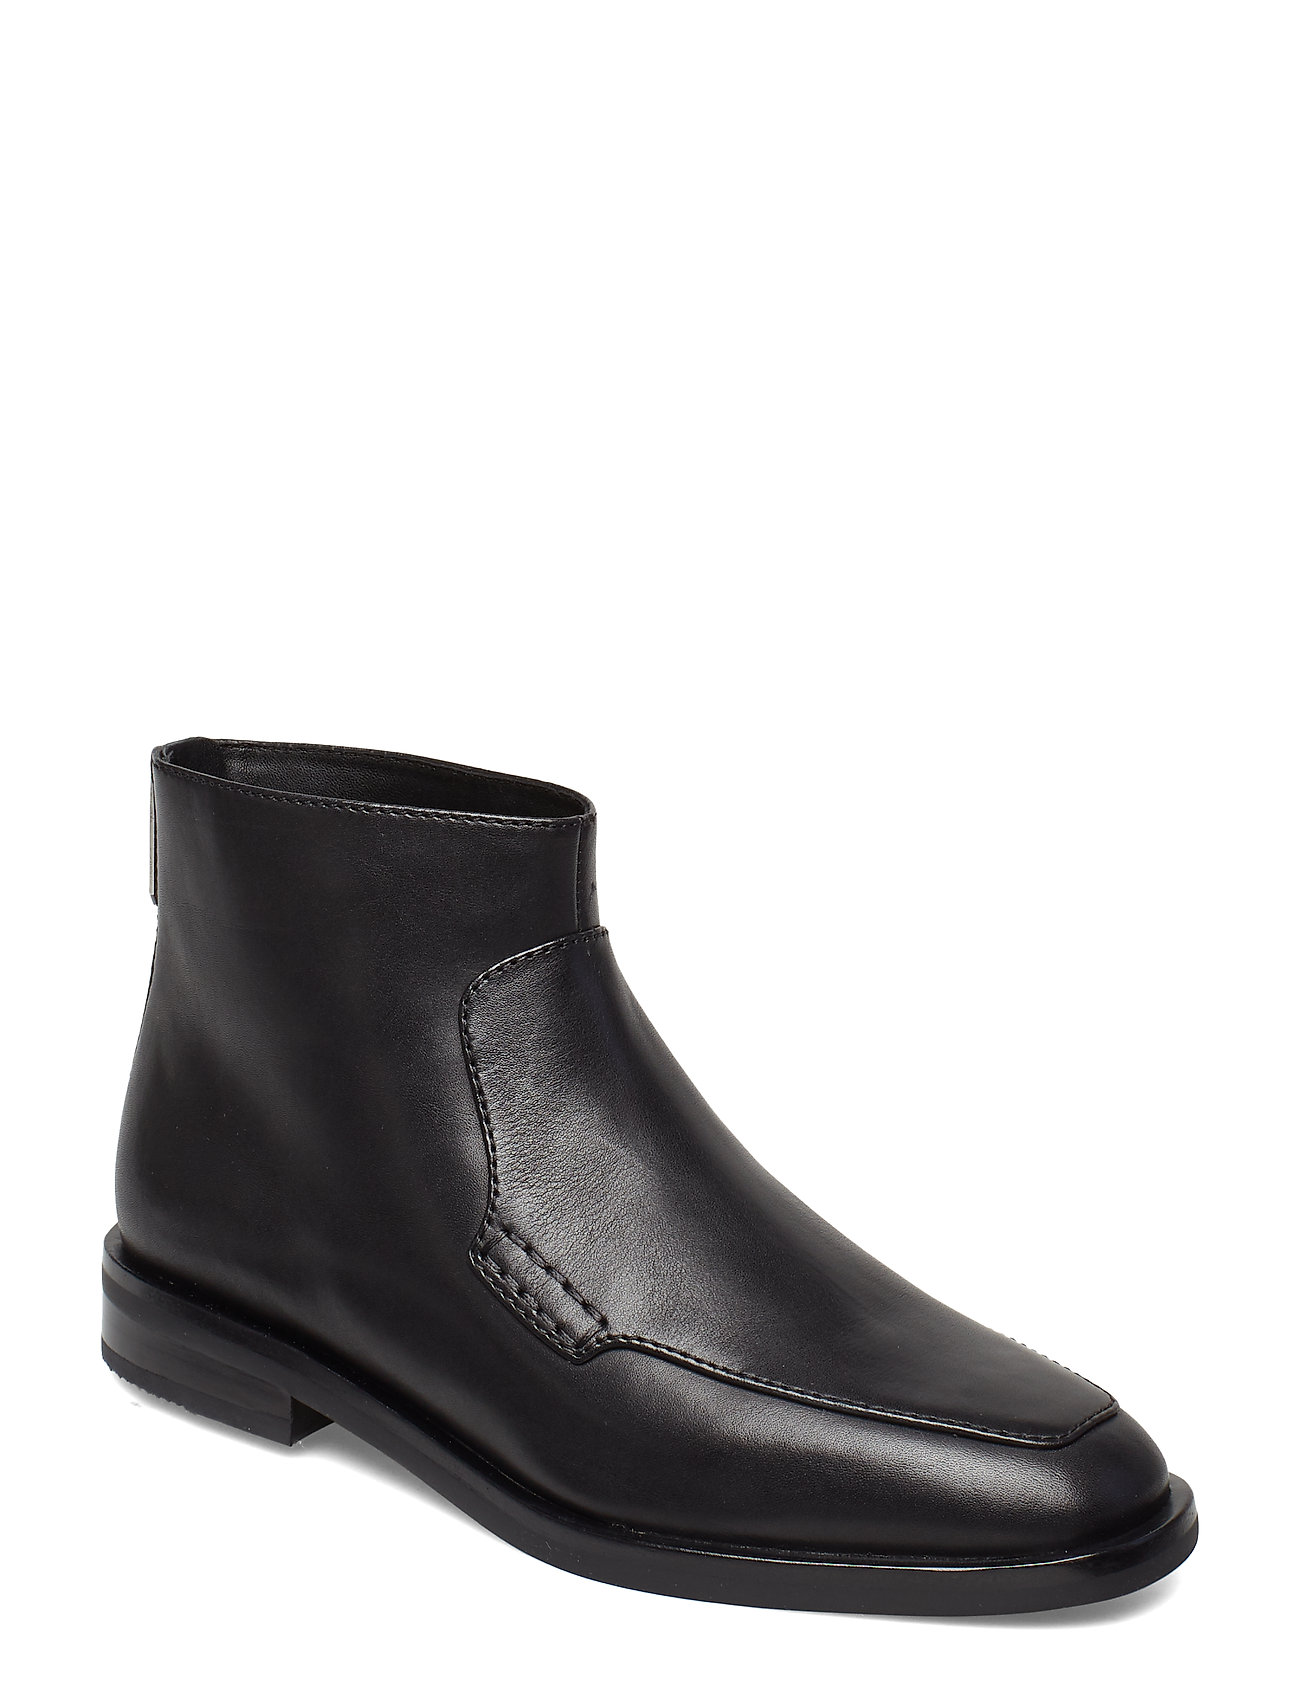 Image of Alexa - 25mm Loafer Boot Shoes Boots Ankle Boots Ankle Boots Flat Heel Sort 3.1 Phillip Lim (3194145509)